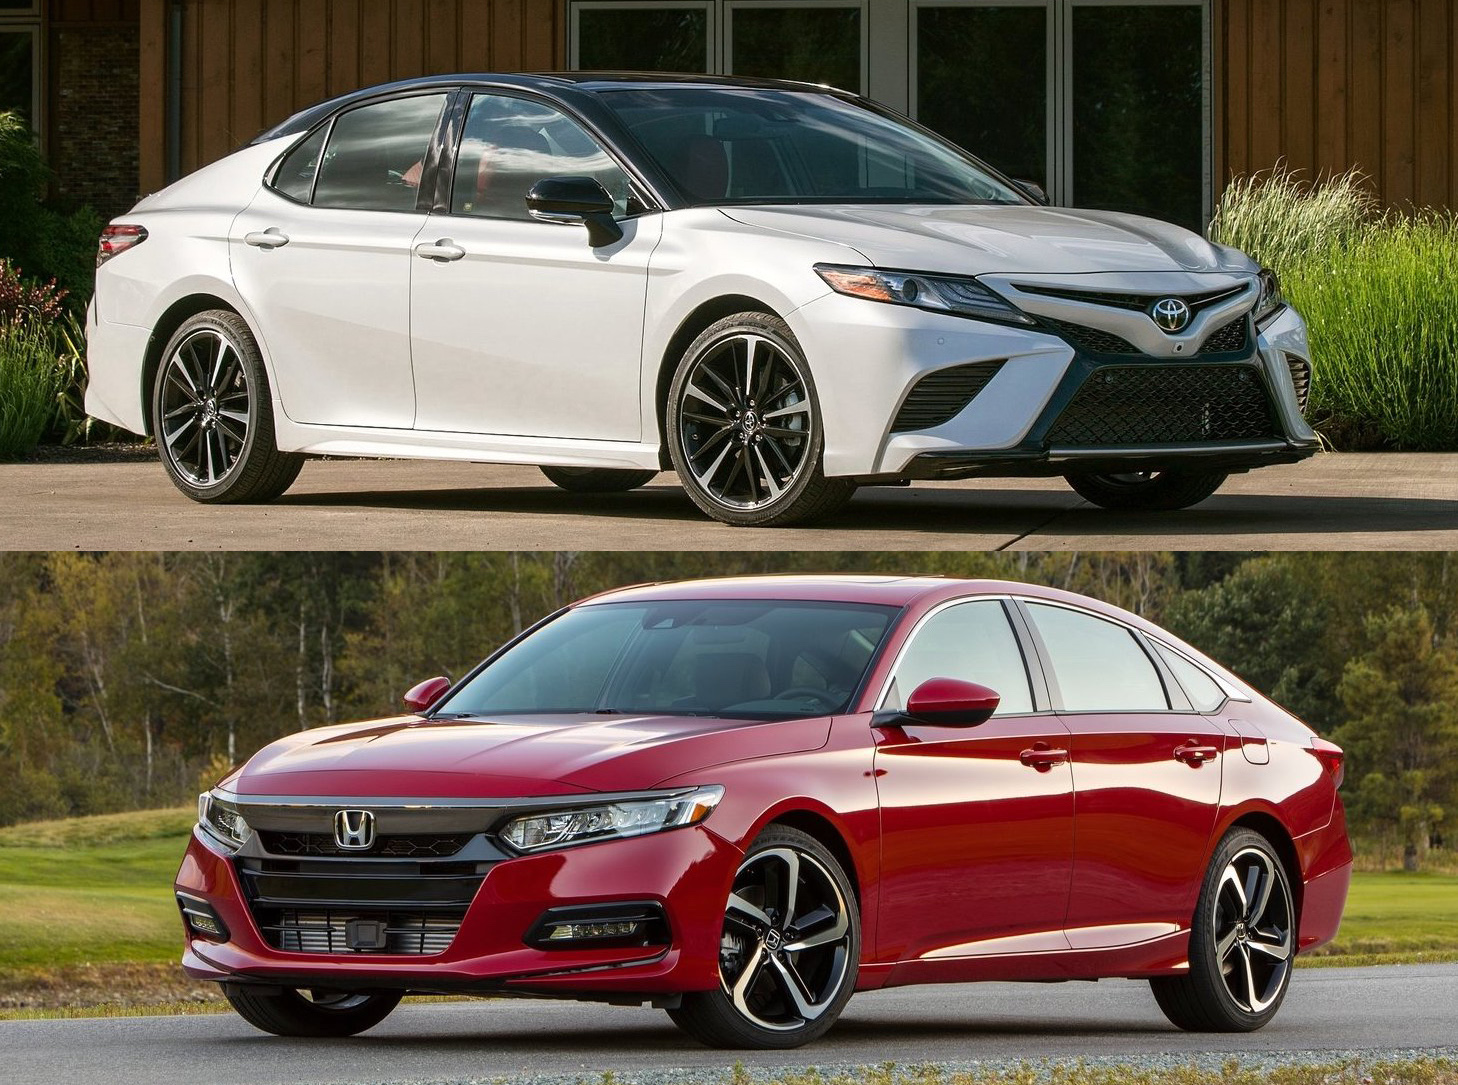 2018 Toyota Camry Vs 2018 Honda Accord: Design